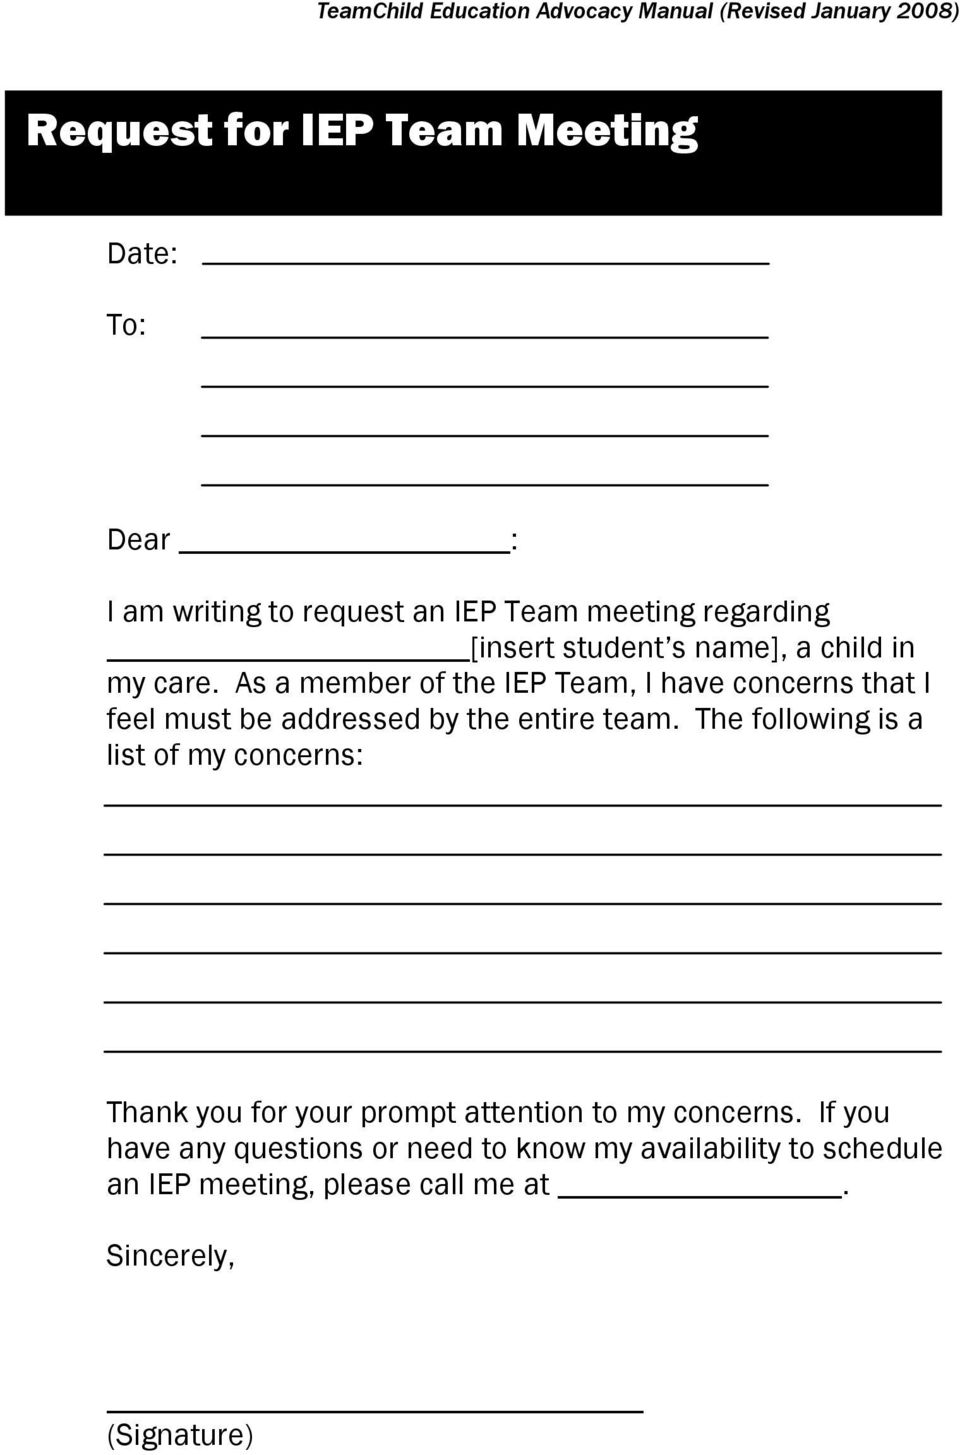 As a member of the IEP Team, I have concerns that I feel must be addressed by the entire team.